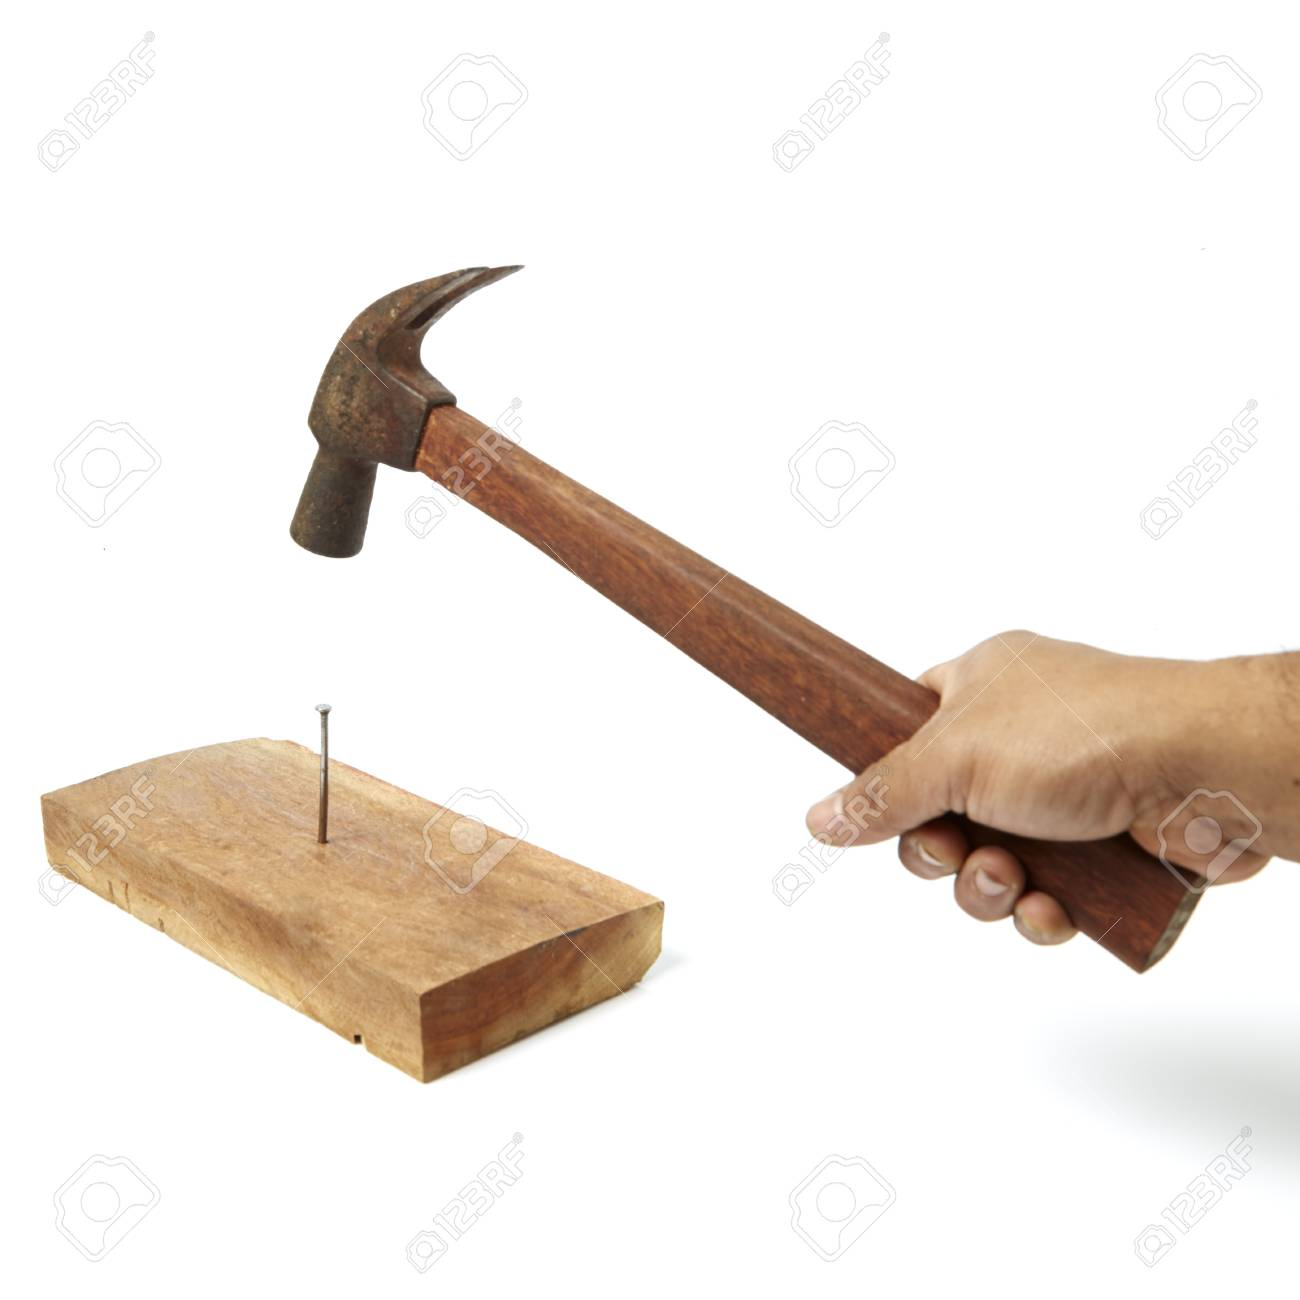 Hammer Pounding A Nail In A Wooden Board Stock Photo Picture And